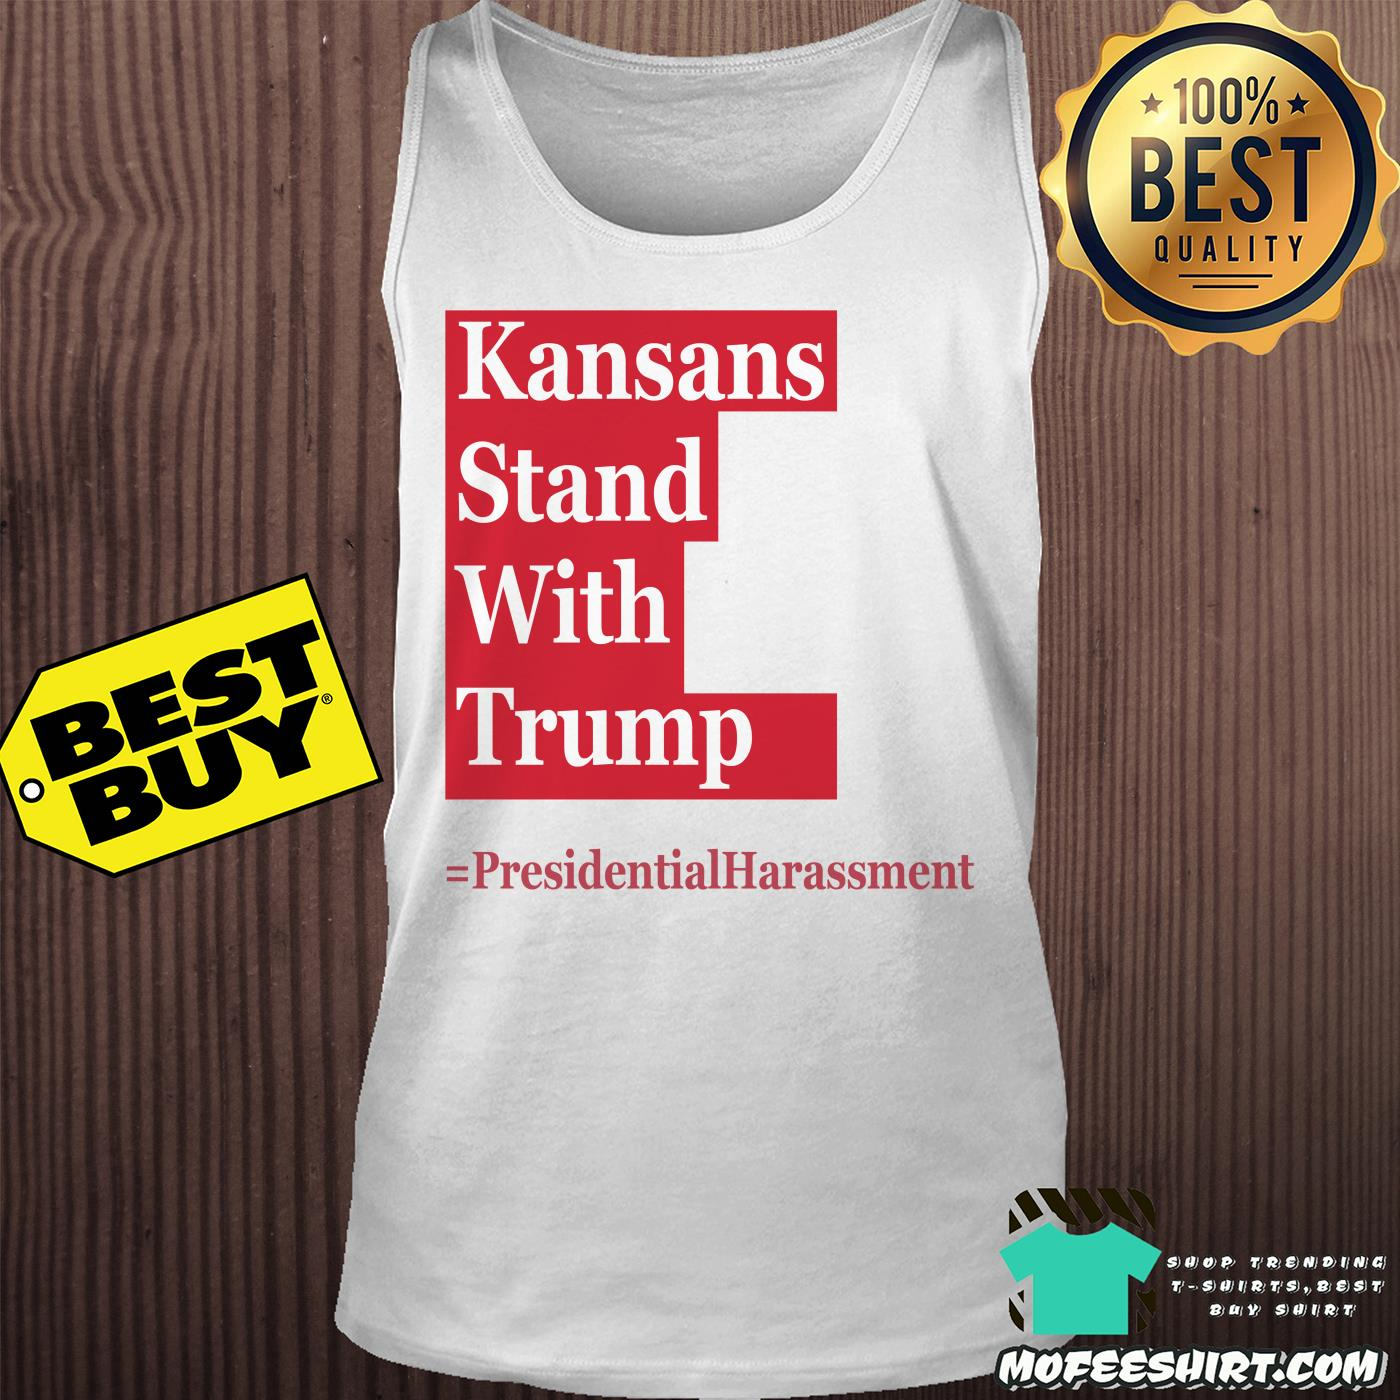 kansans stand with trump presidential harassment tank top - Kansans stand with Trump Presidential Harassment shirt